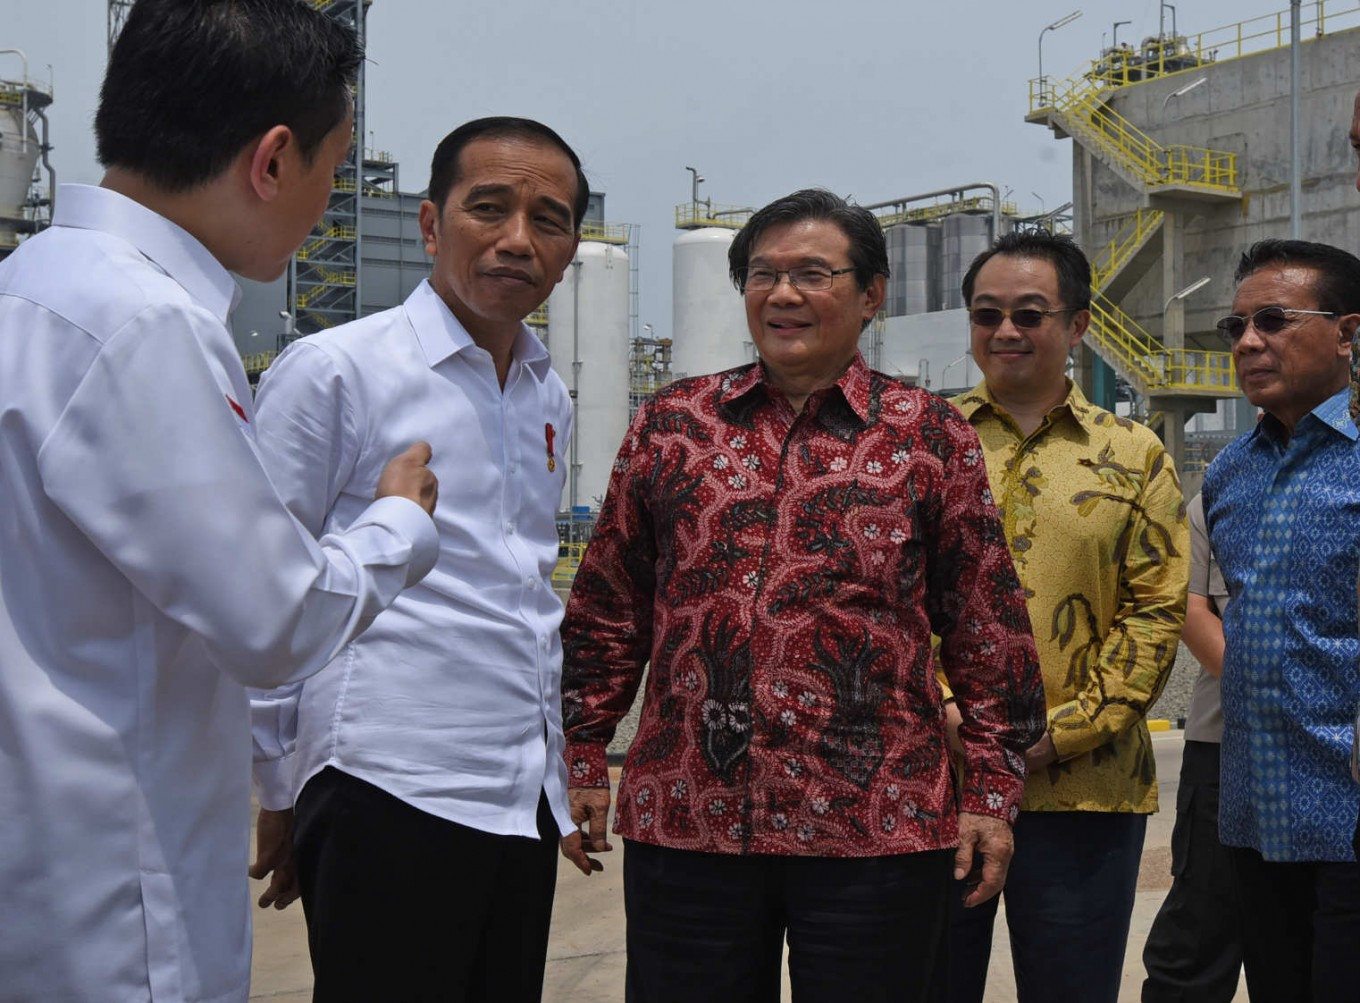 Indonesia's GDP growth to remain sluggish, or even slow next year: Analysts